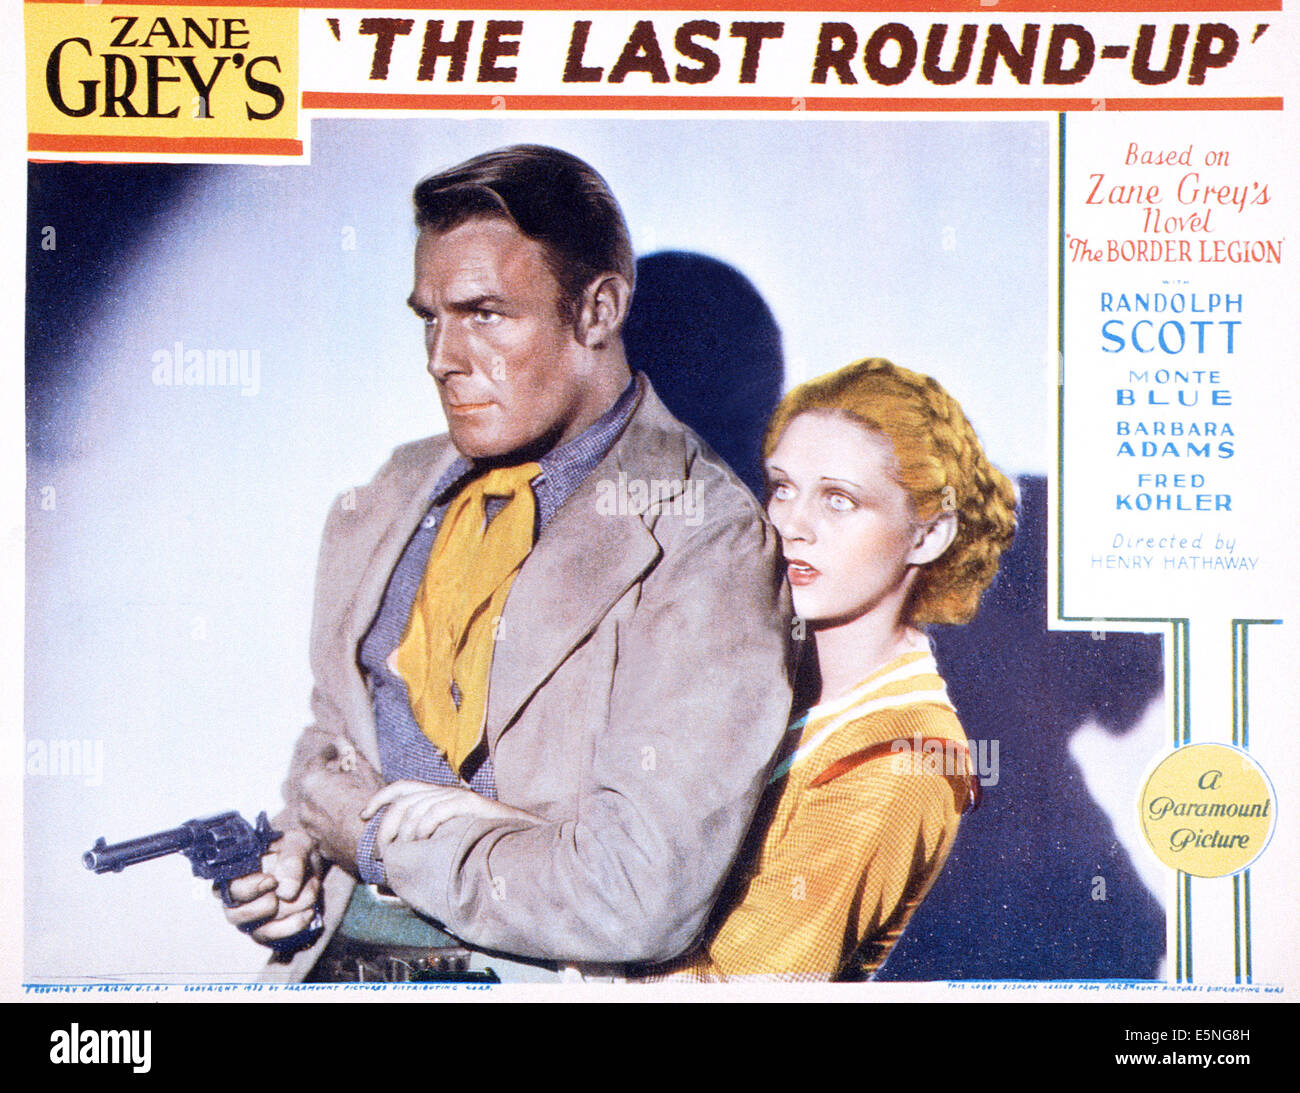 THE LAST ROUND-UP, from left: Randolph Scott, Barbara Fritchie, 1934 - Stock Image